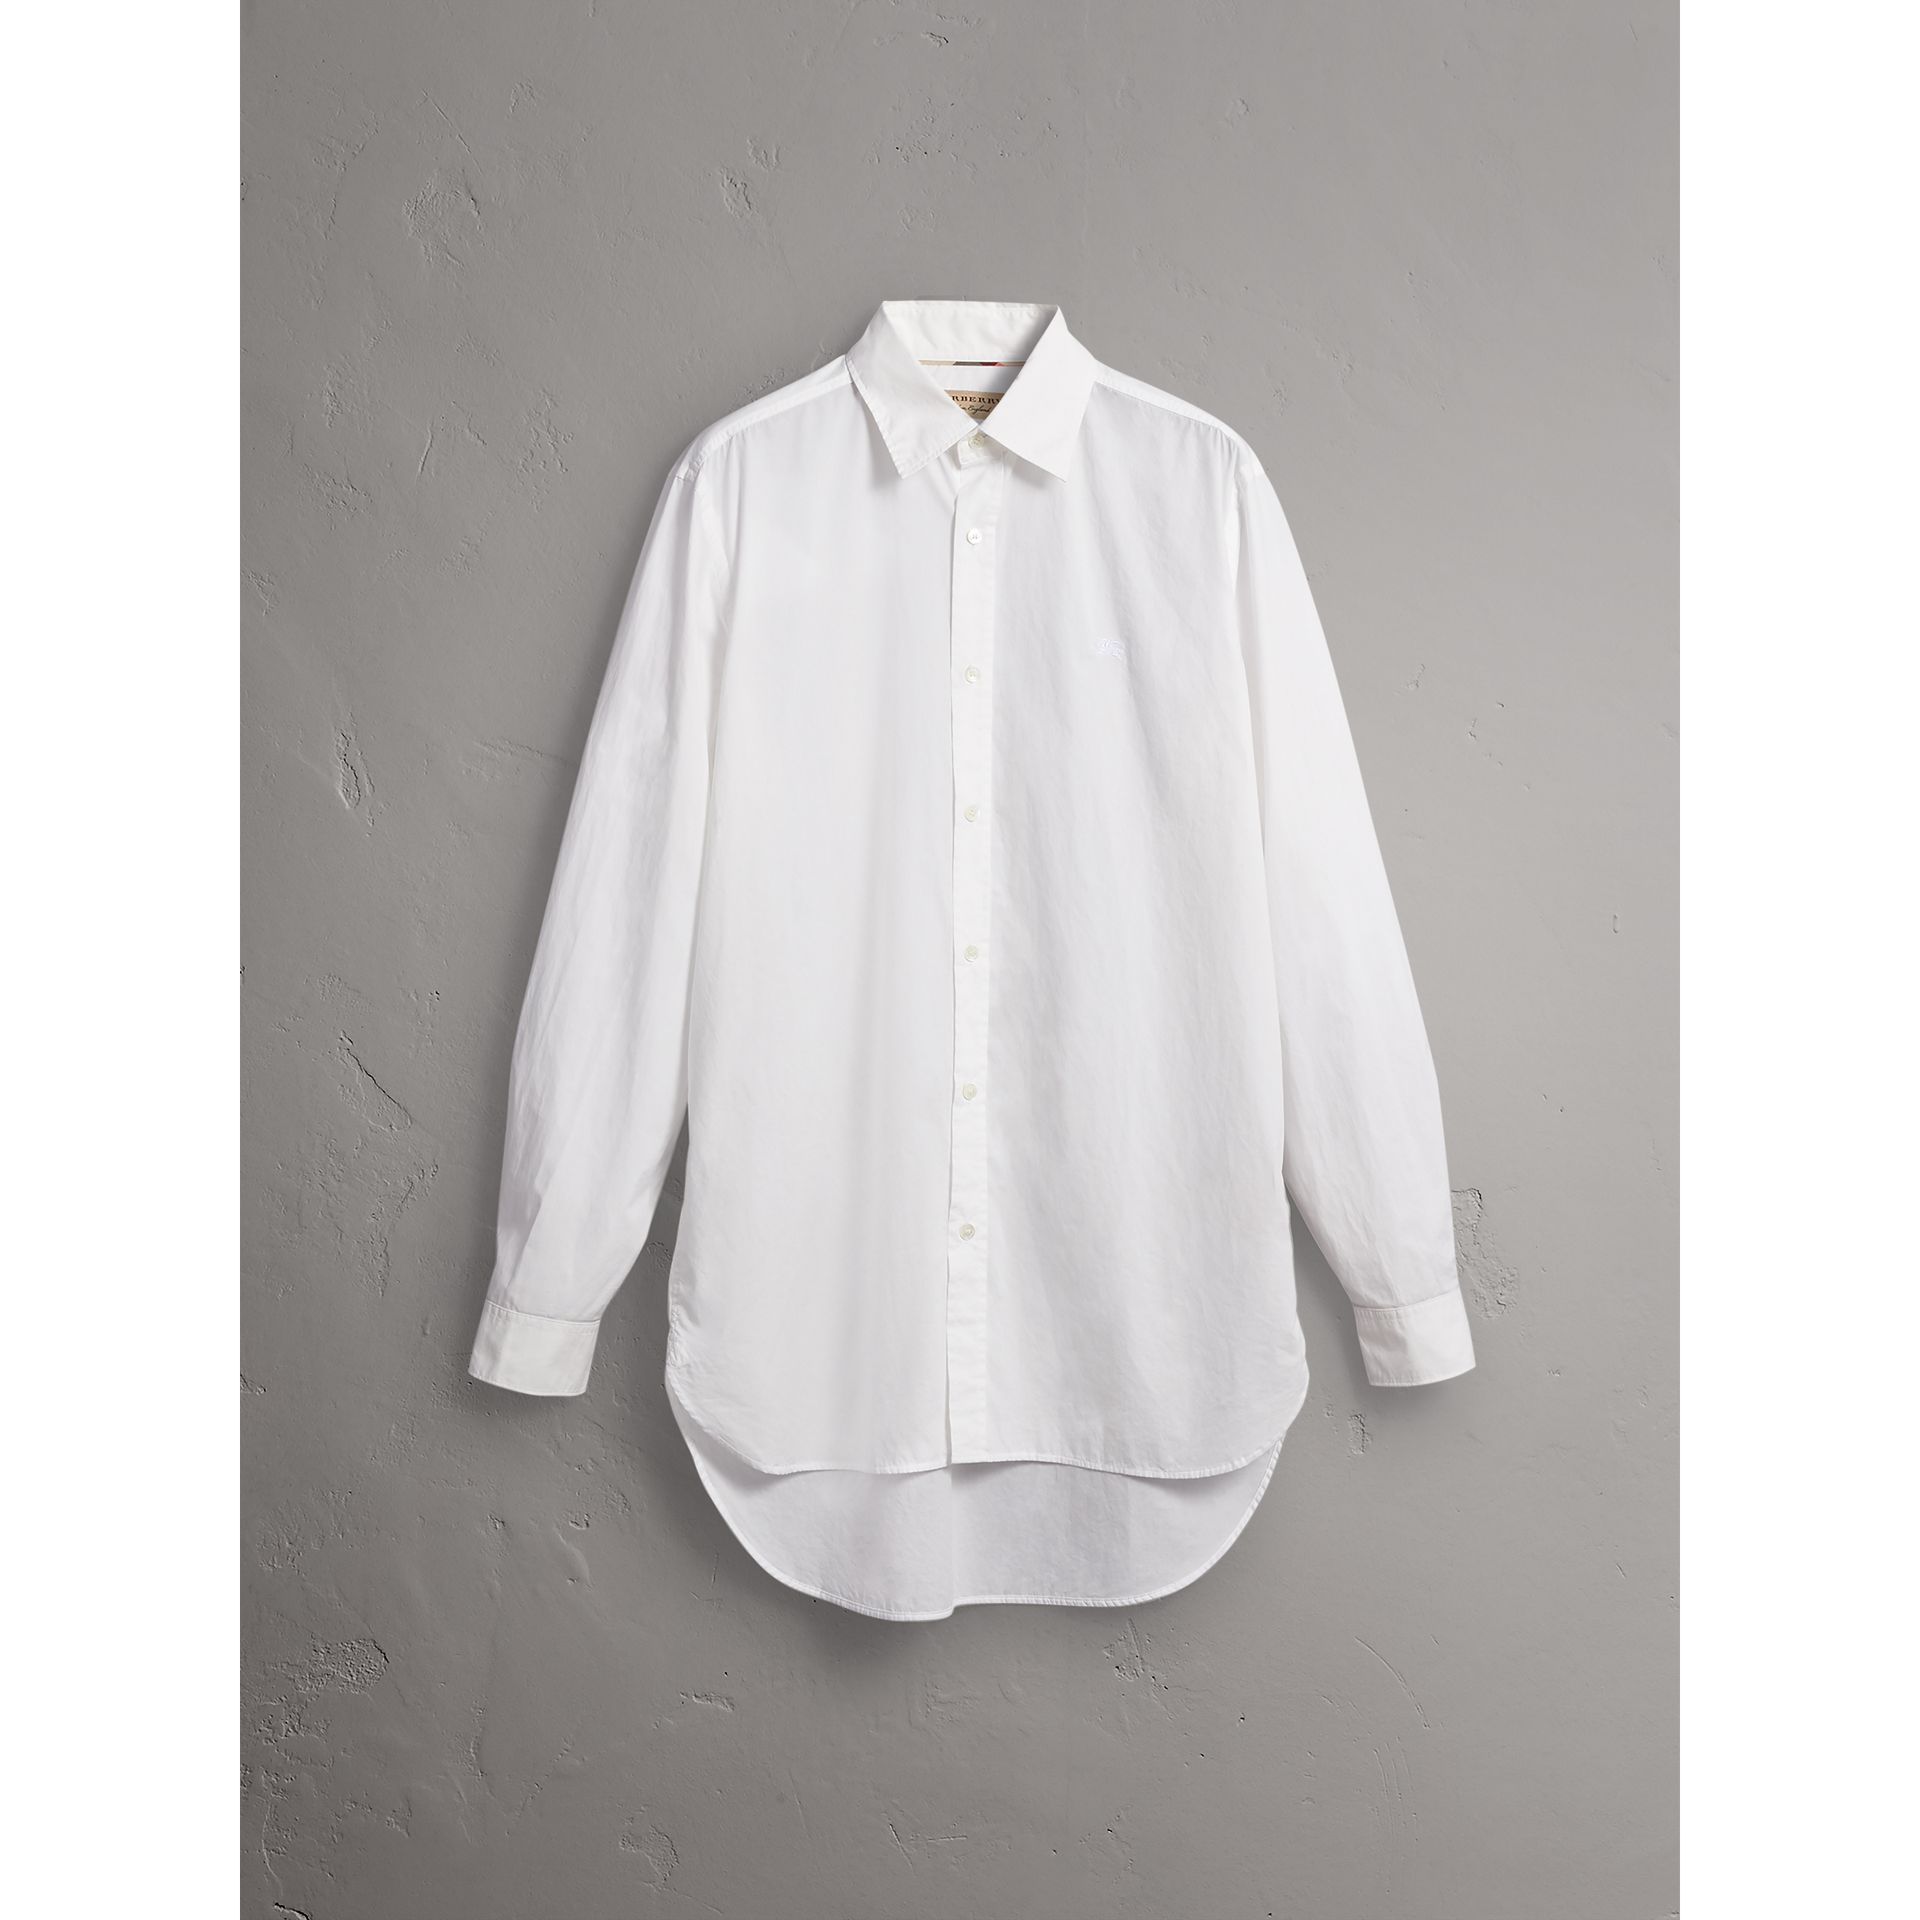 Japanese Cotton Poplin Shirt in White - Men | Burberry - gallery image 4